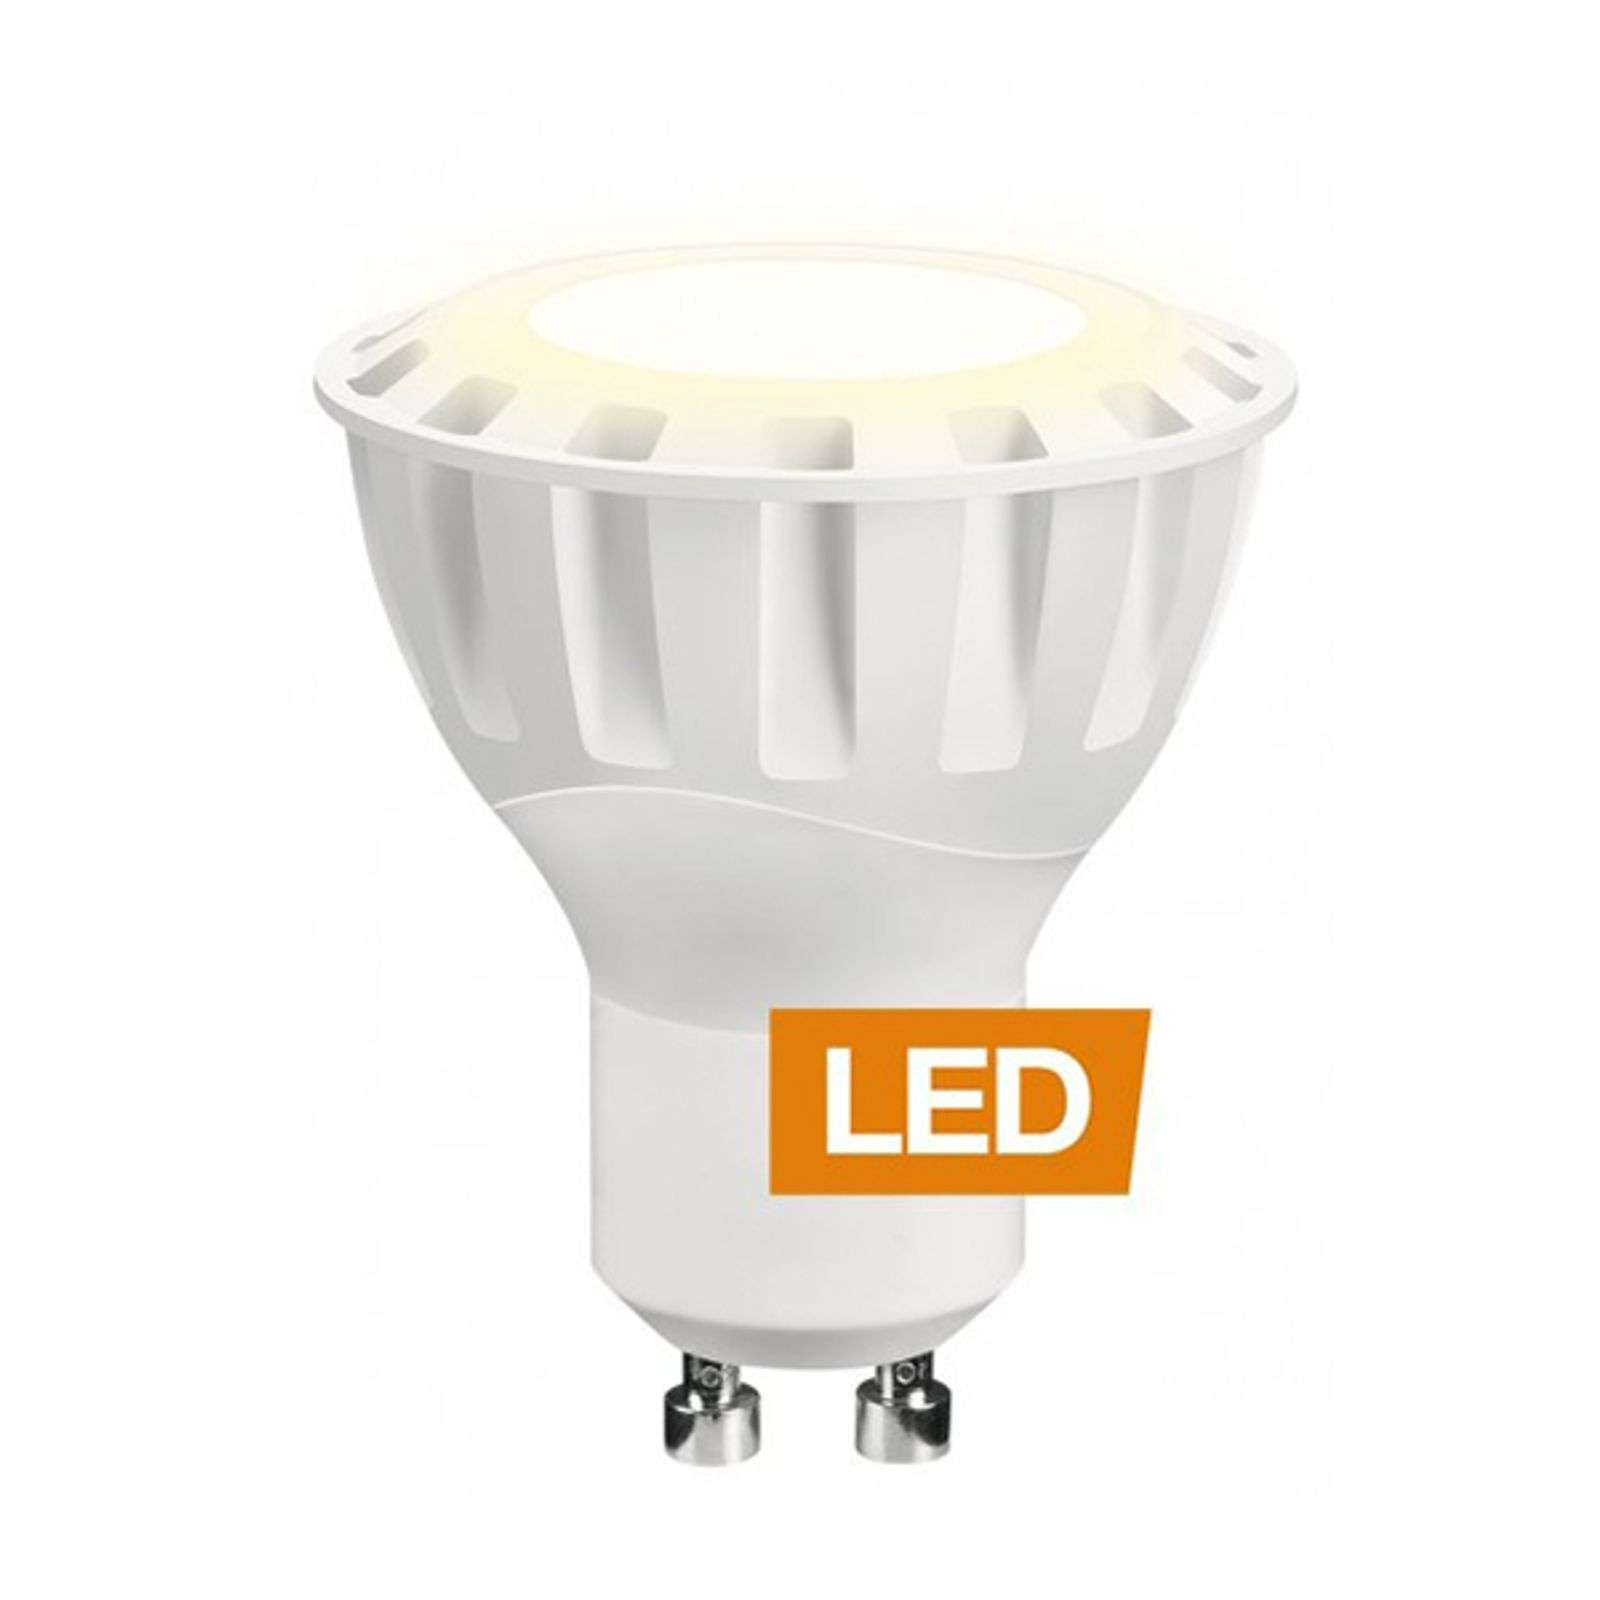 Riflettore LED 927 6W MR16 GU10 60° non dimmer.